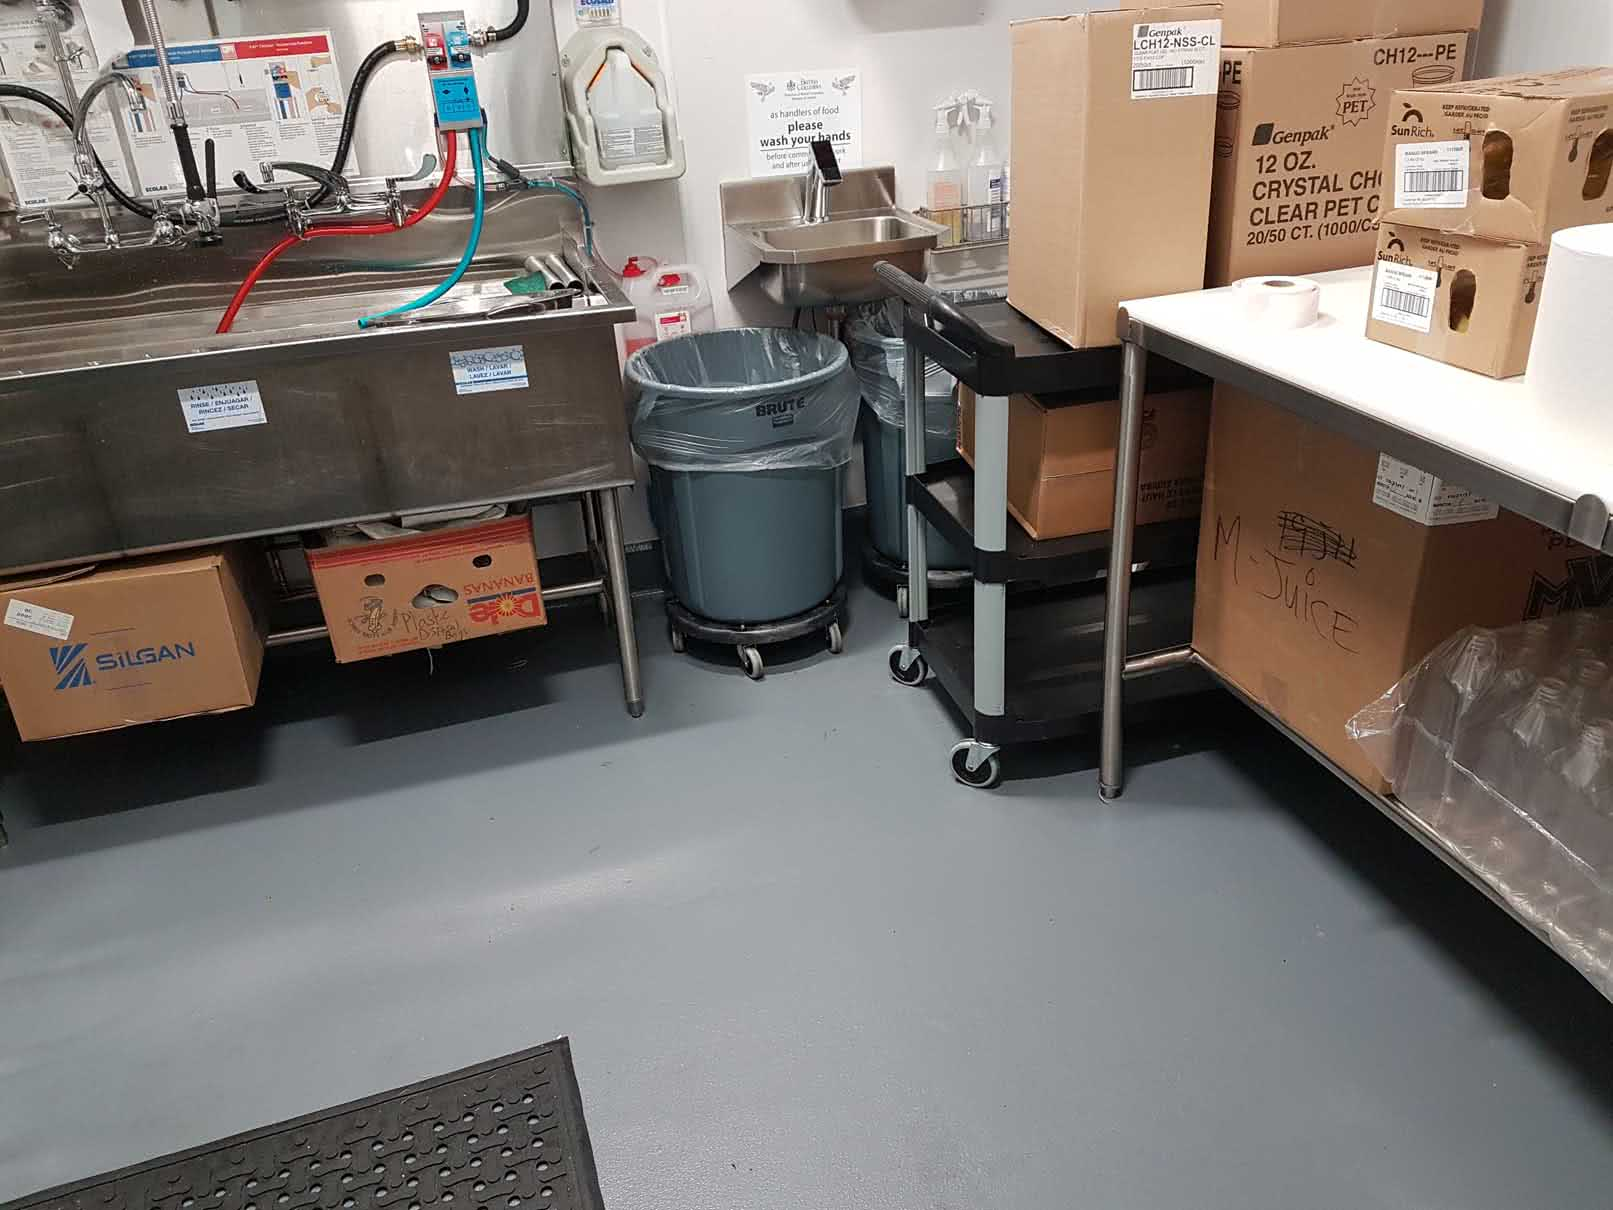 Concrete floor resurfacing for Save on Foods